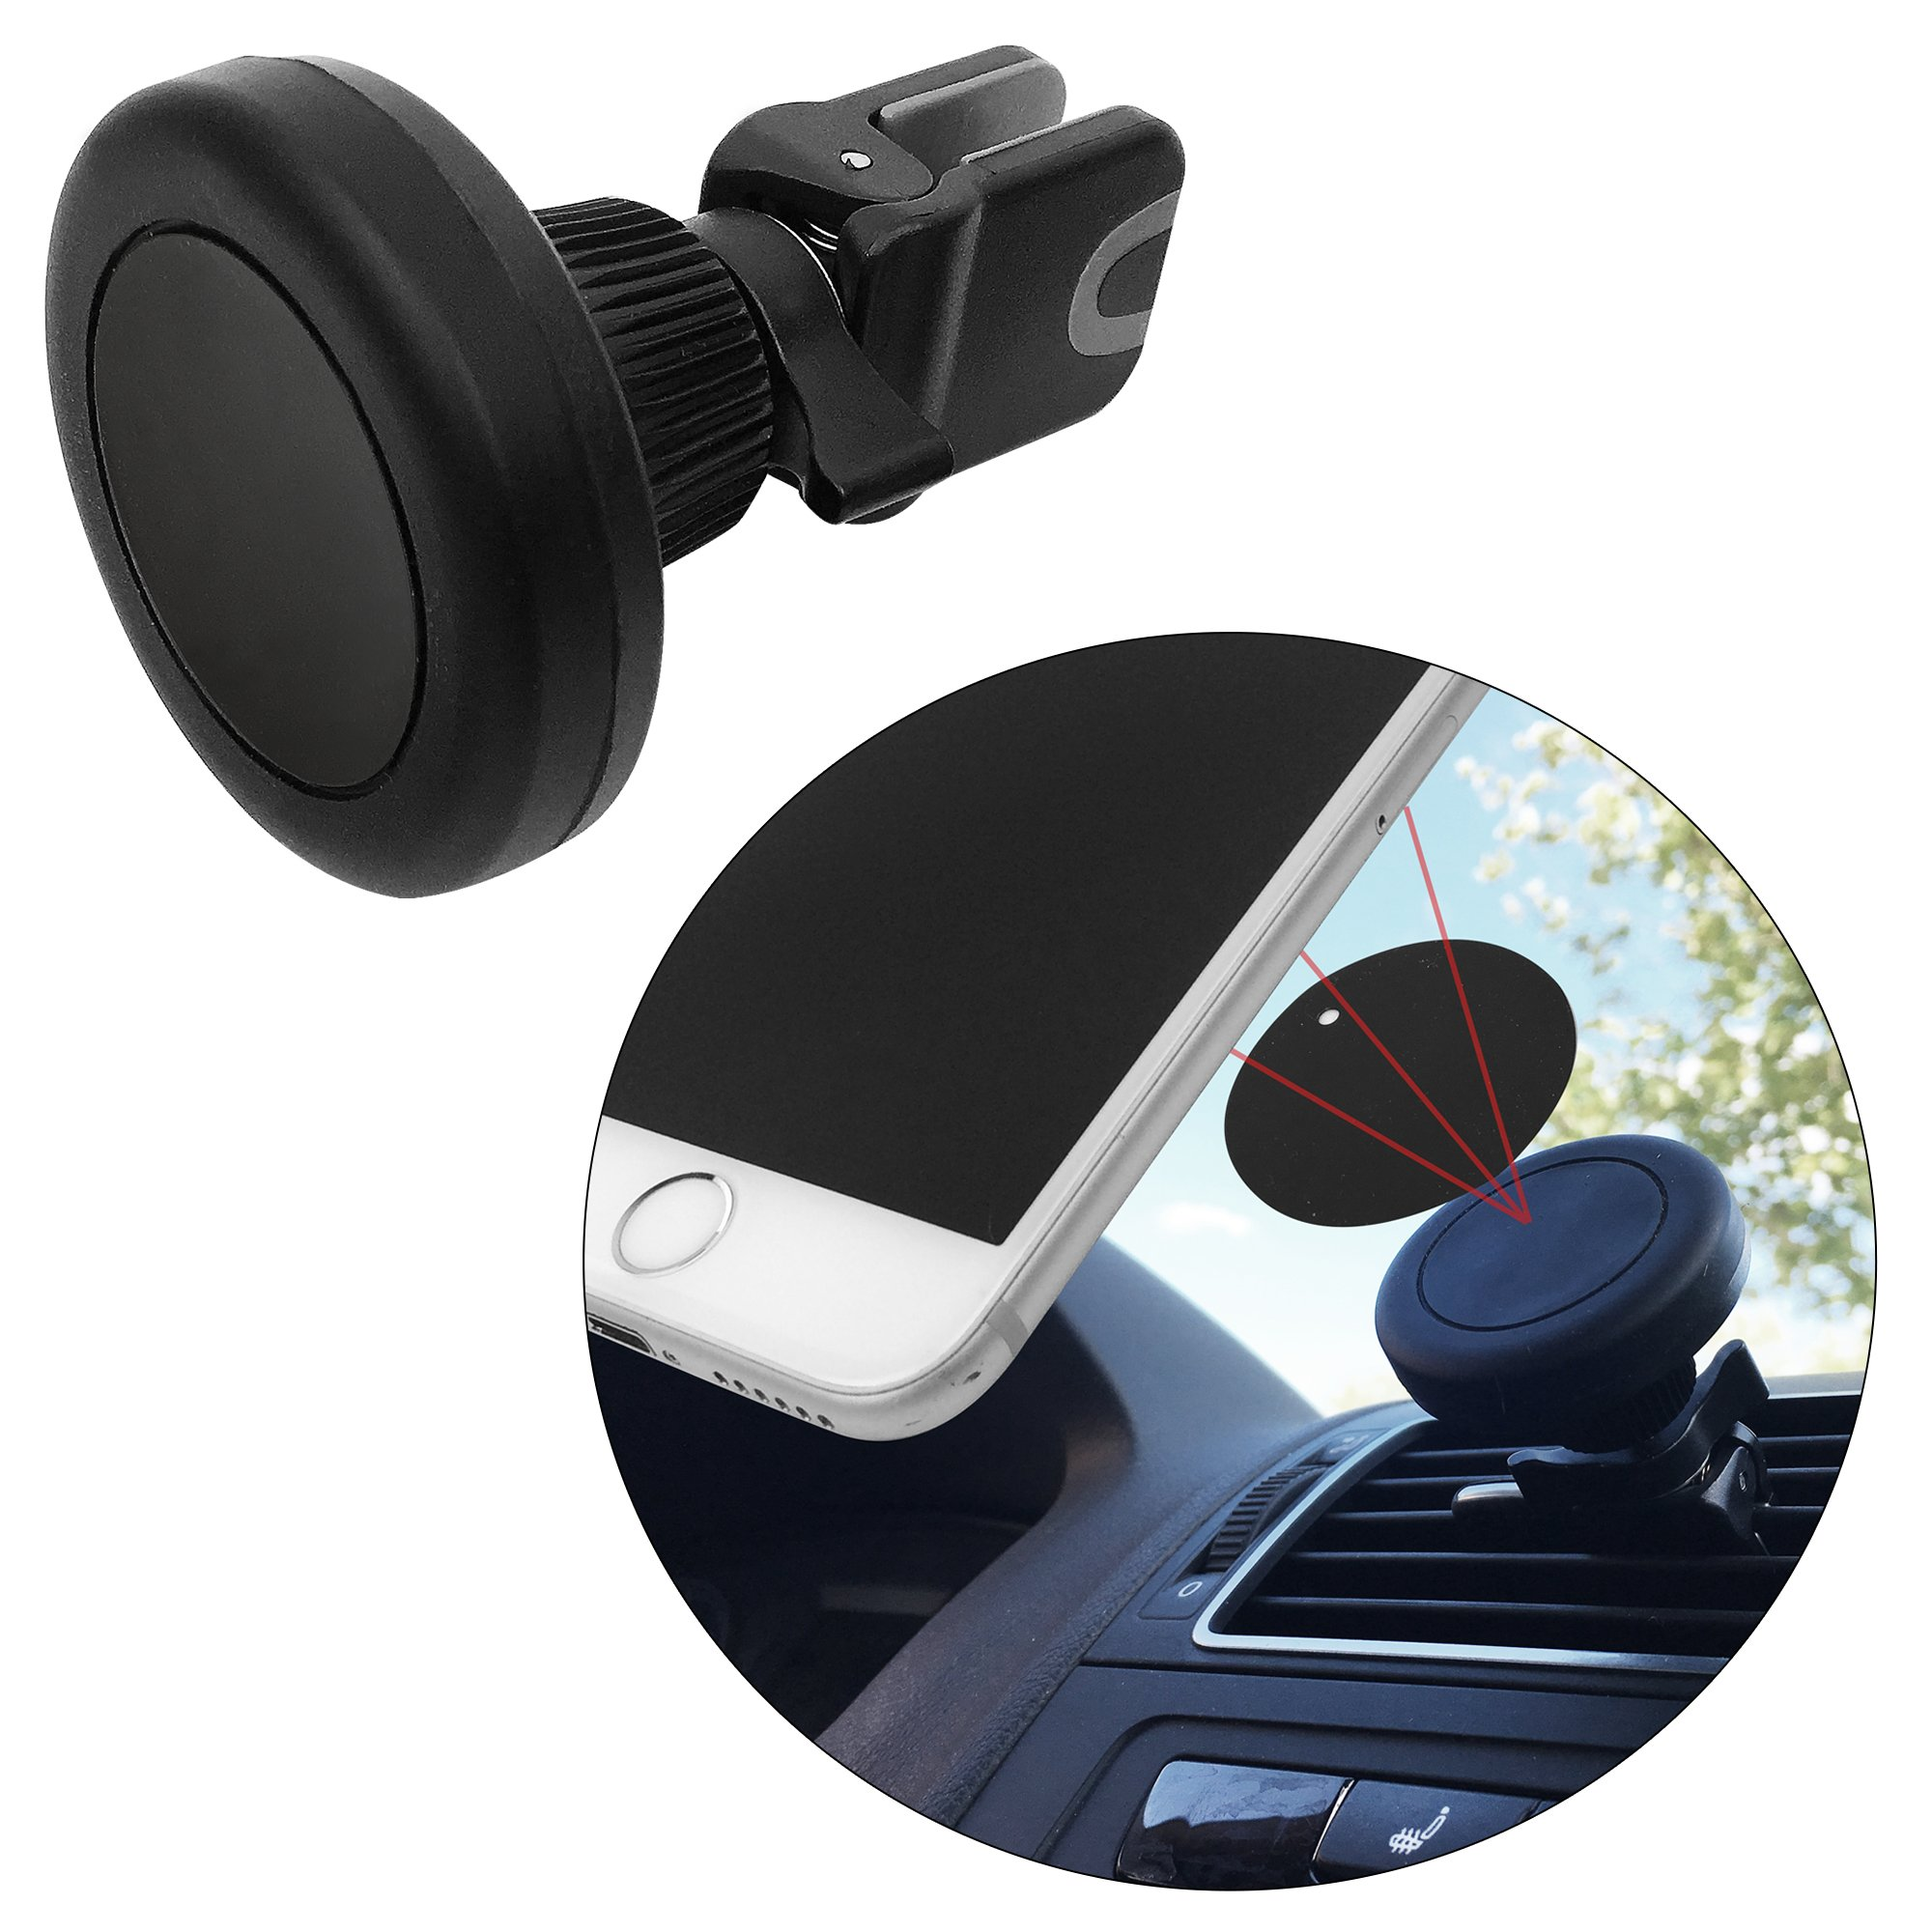 Air Vent Magnetic Car Mount Holder Cradle Grip- Fast Snap For All Smartphones Mini Tablets Cell Phones GPS Mobile Devices- One Touch Stick On Dash Board, Safe Strong Slim- Black + 2 Metal Plates